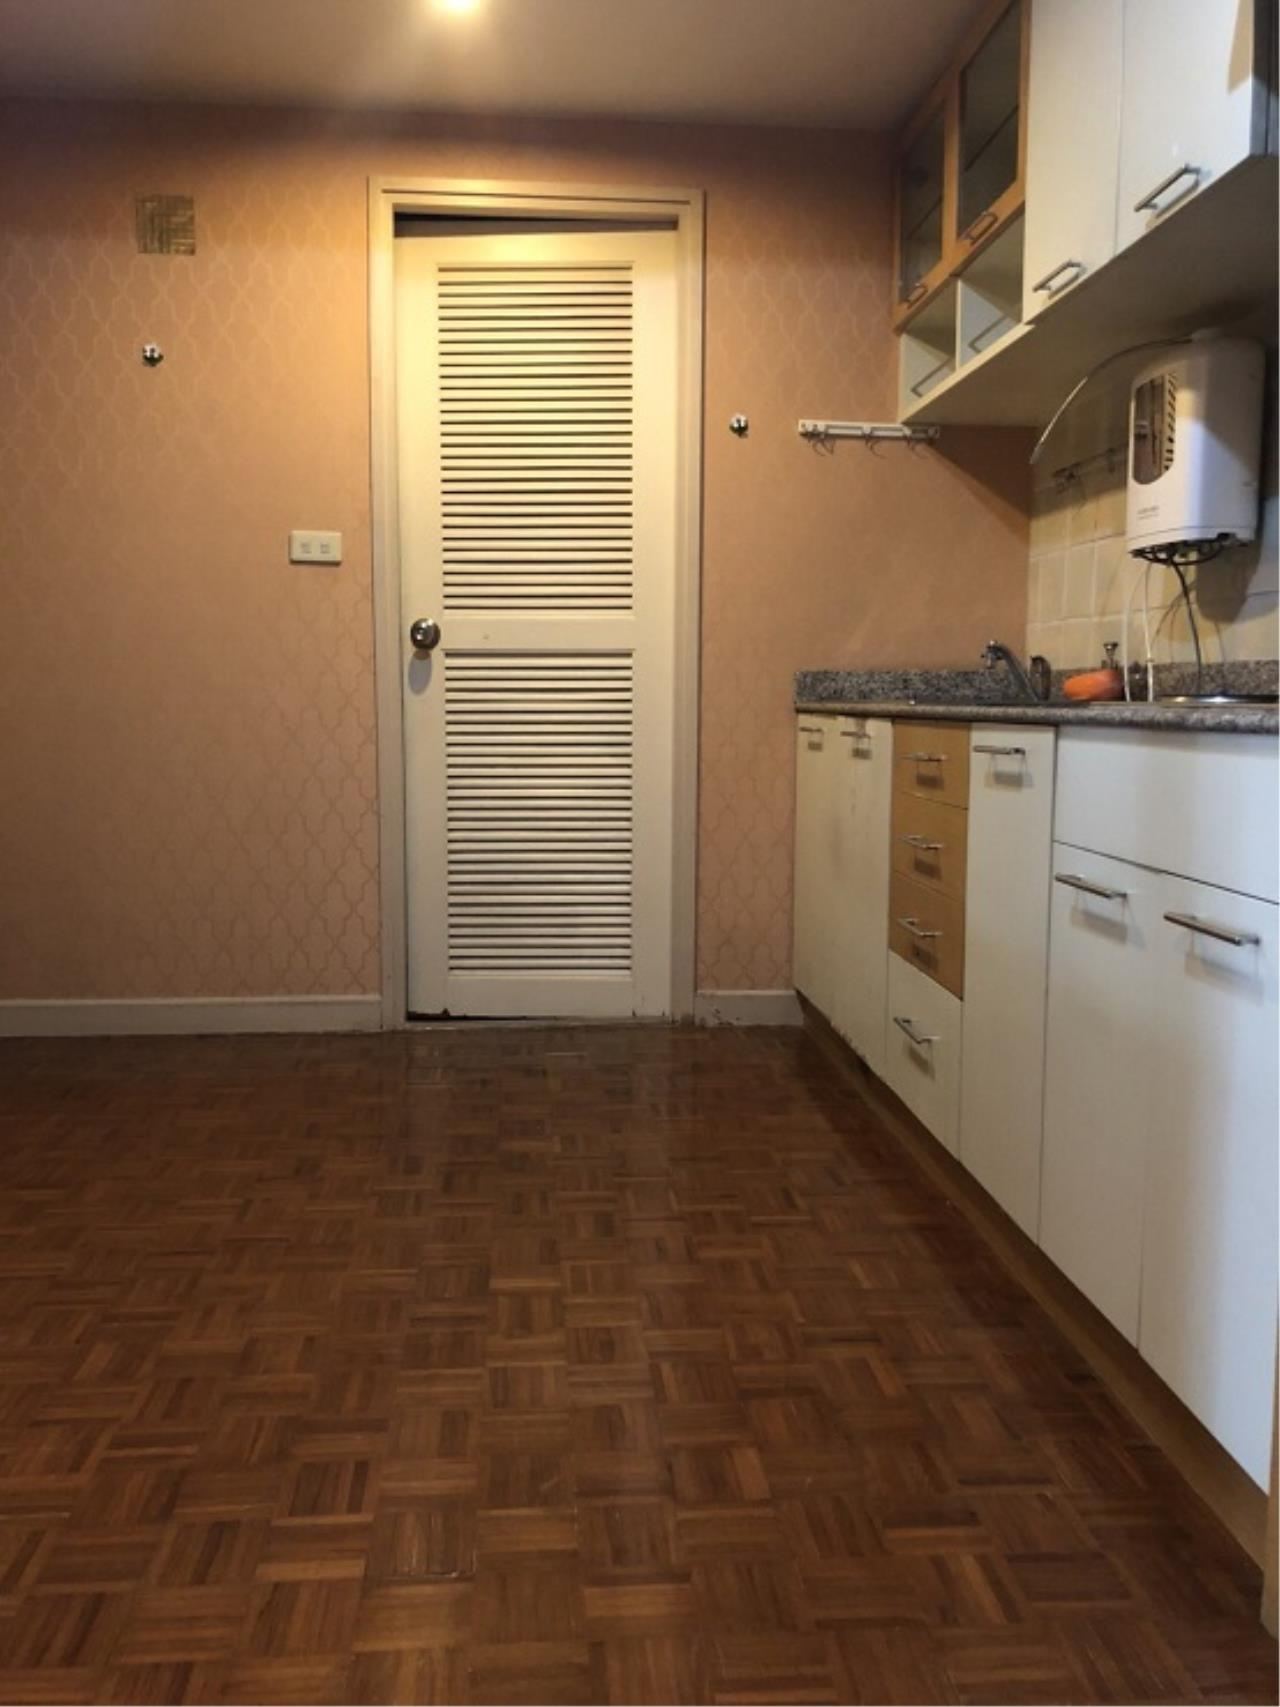 RE/MAX All Star Realty Agency's Silom Suite for sale/rent (BTS Chong Nonsi/ Surasak) 7